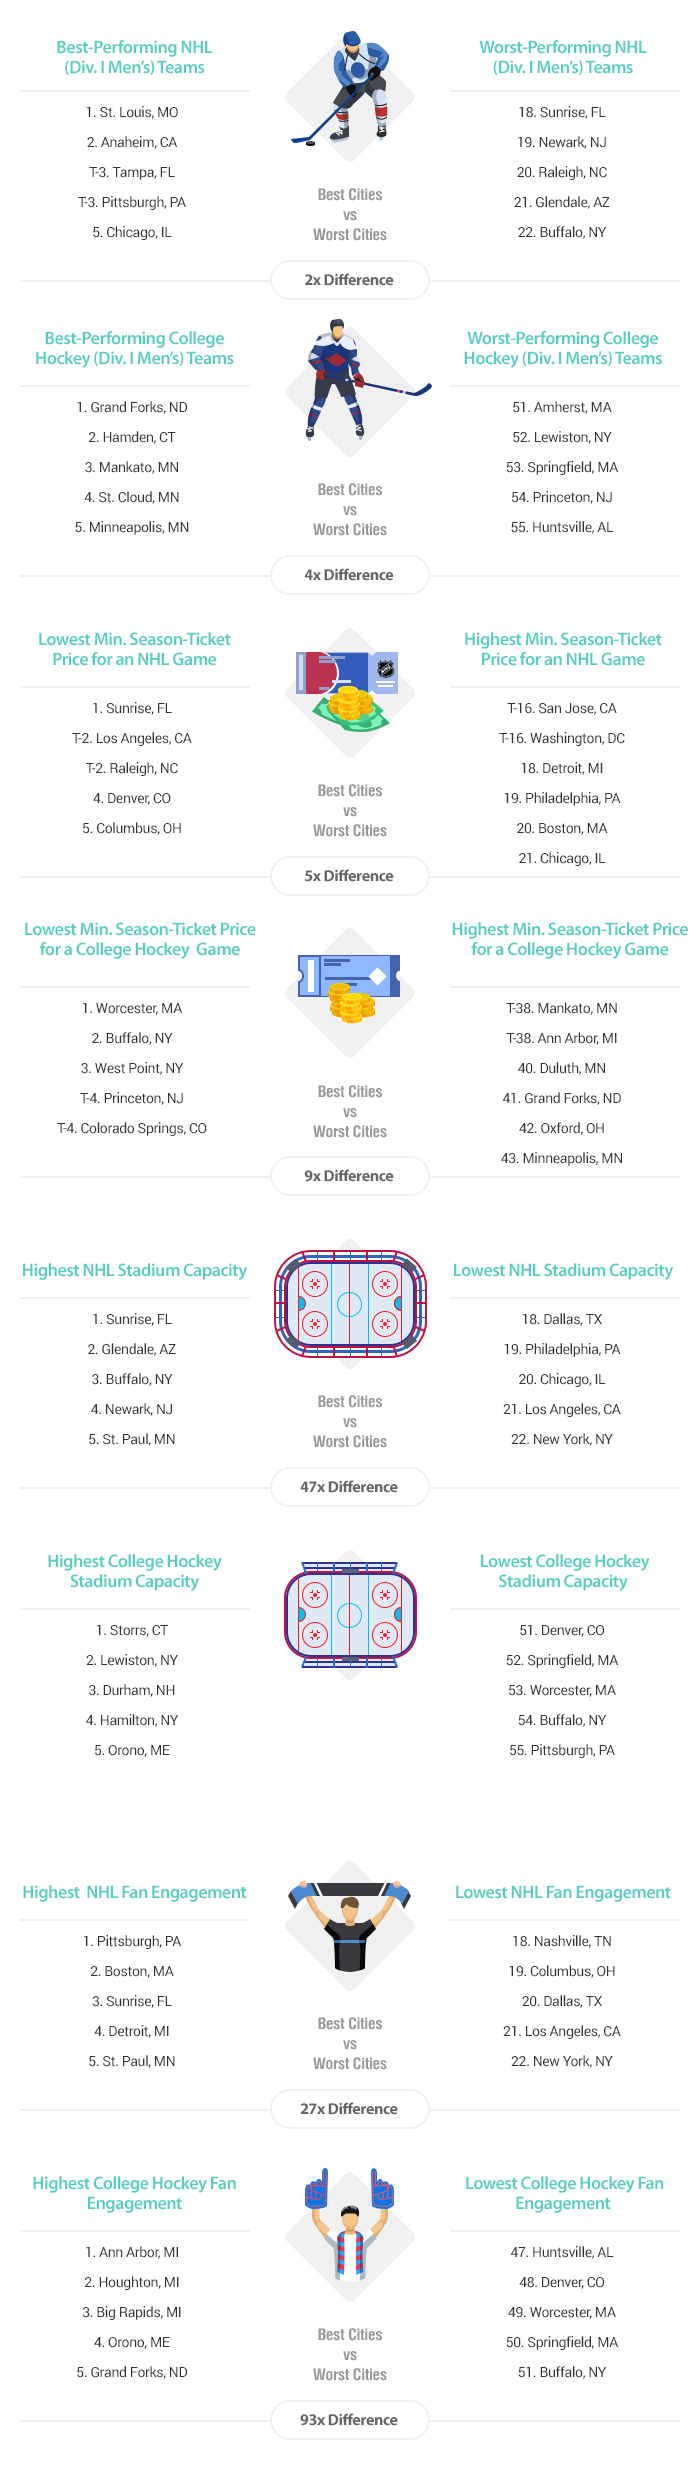 Artwork 2016 Best Cities for Hockey Fans v7